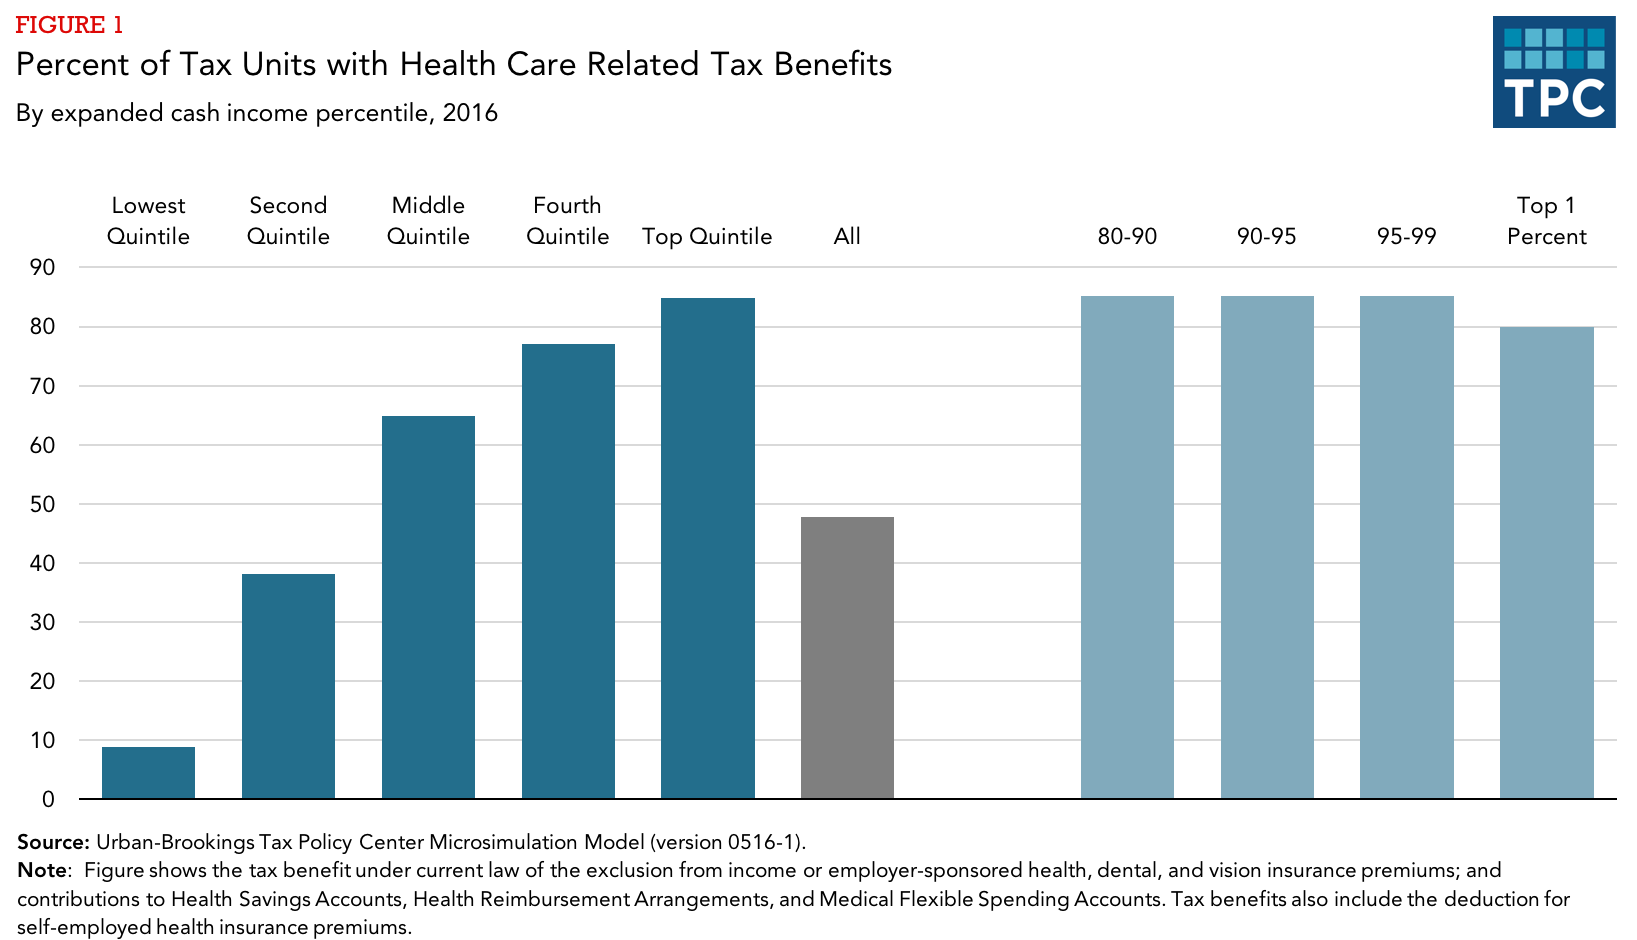 Who benefits from health-care related tax expenditures ...